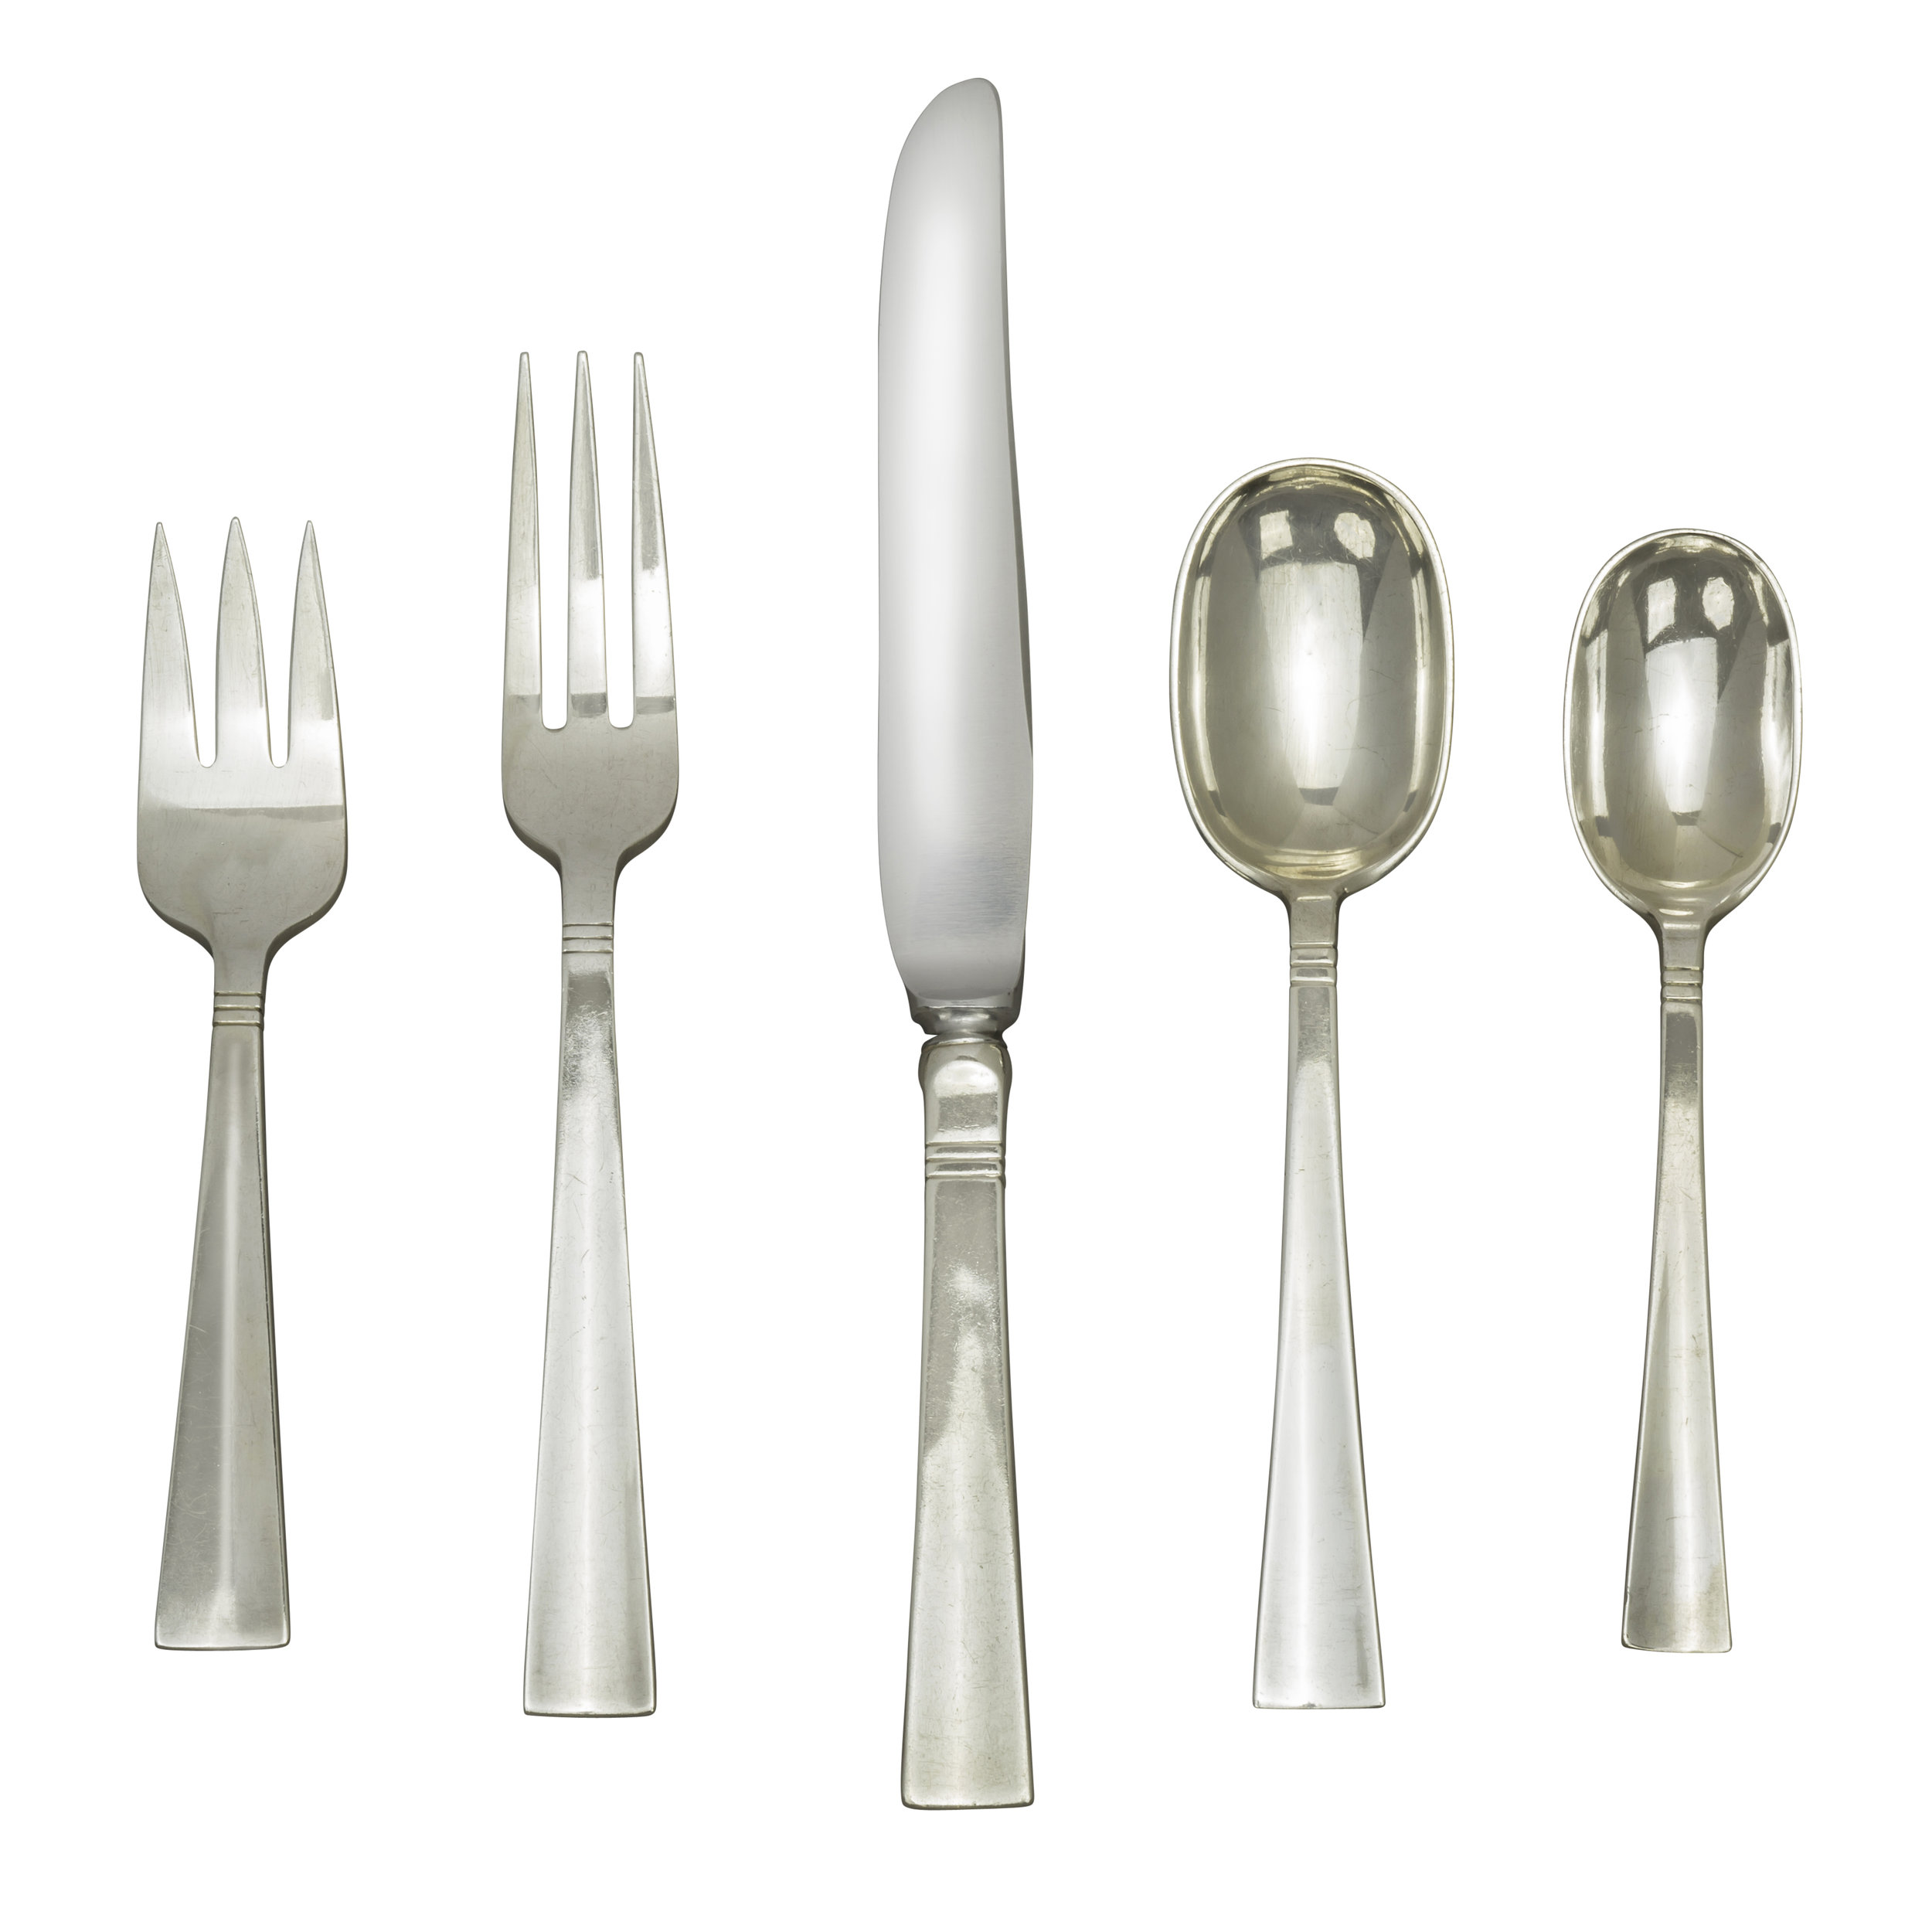 Silverware set-2055-Edit-Edit-Edit.jpg